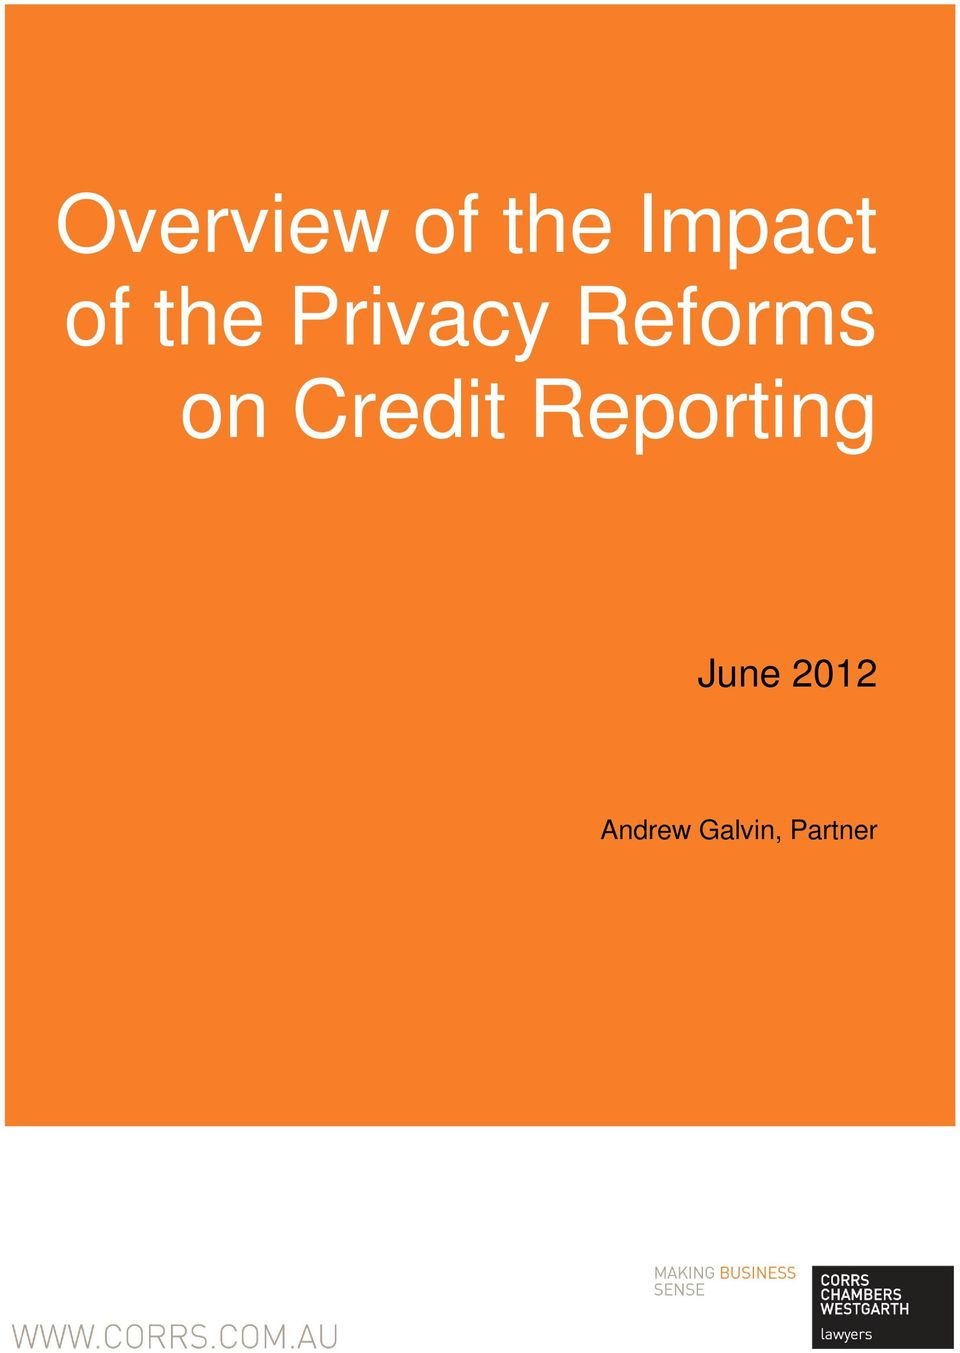 on Credit Reporting June